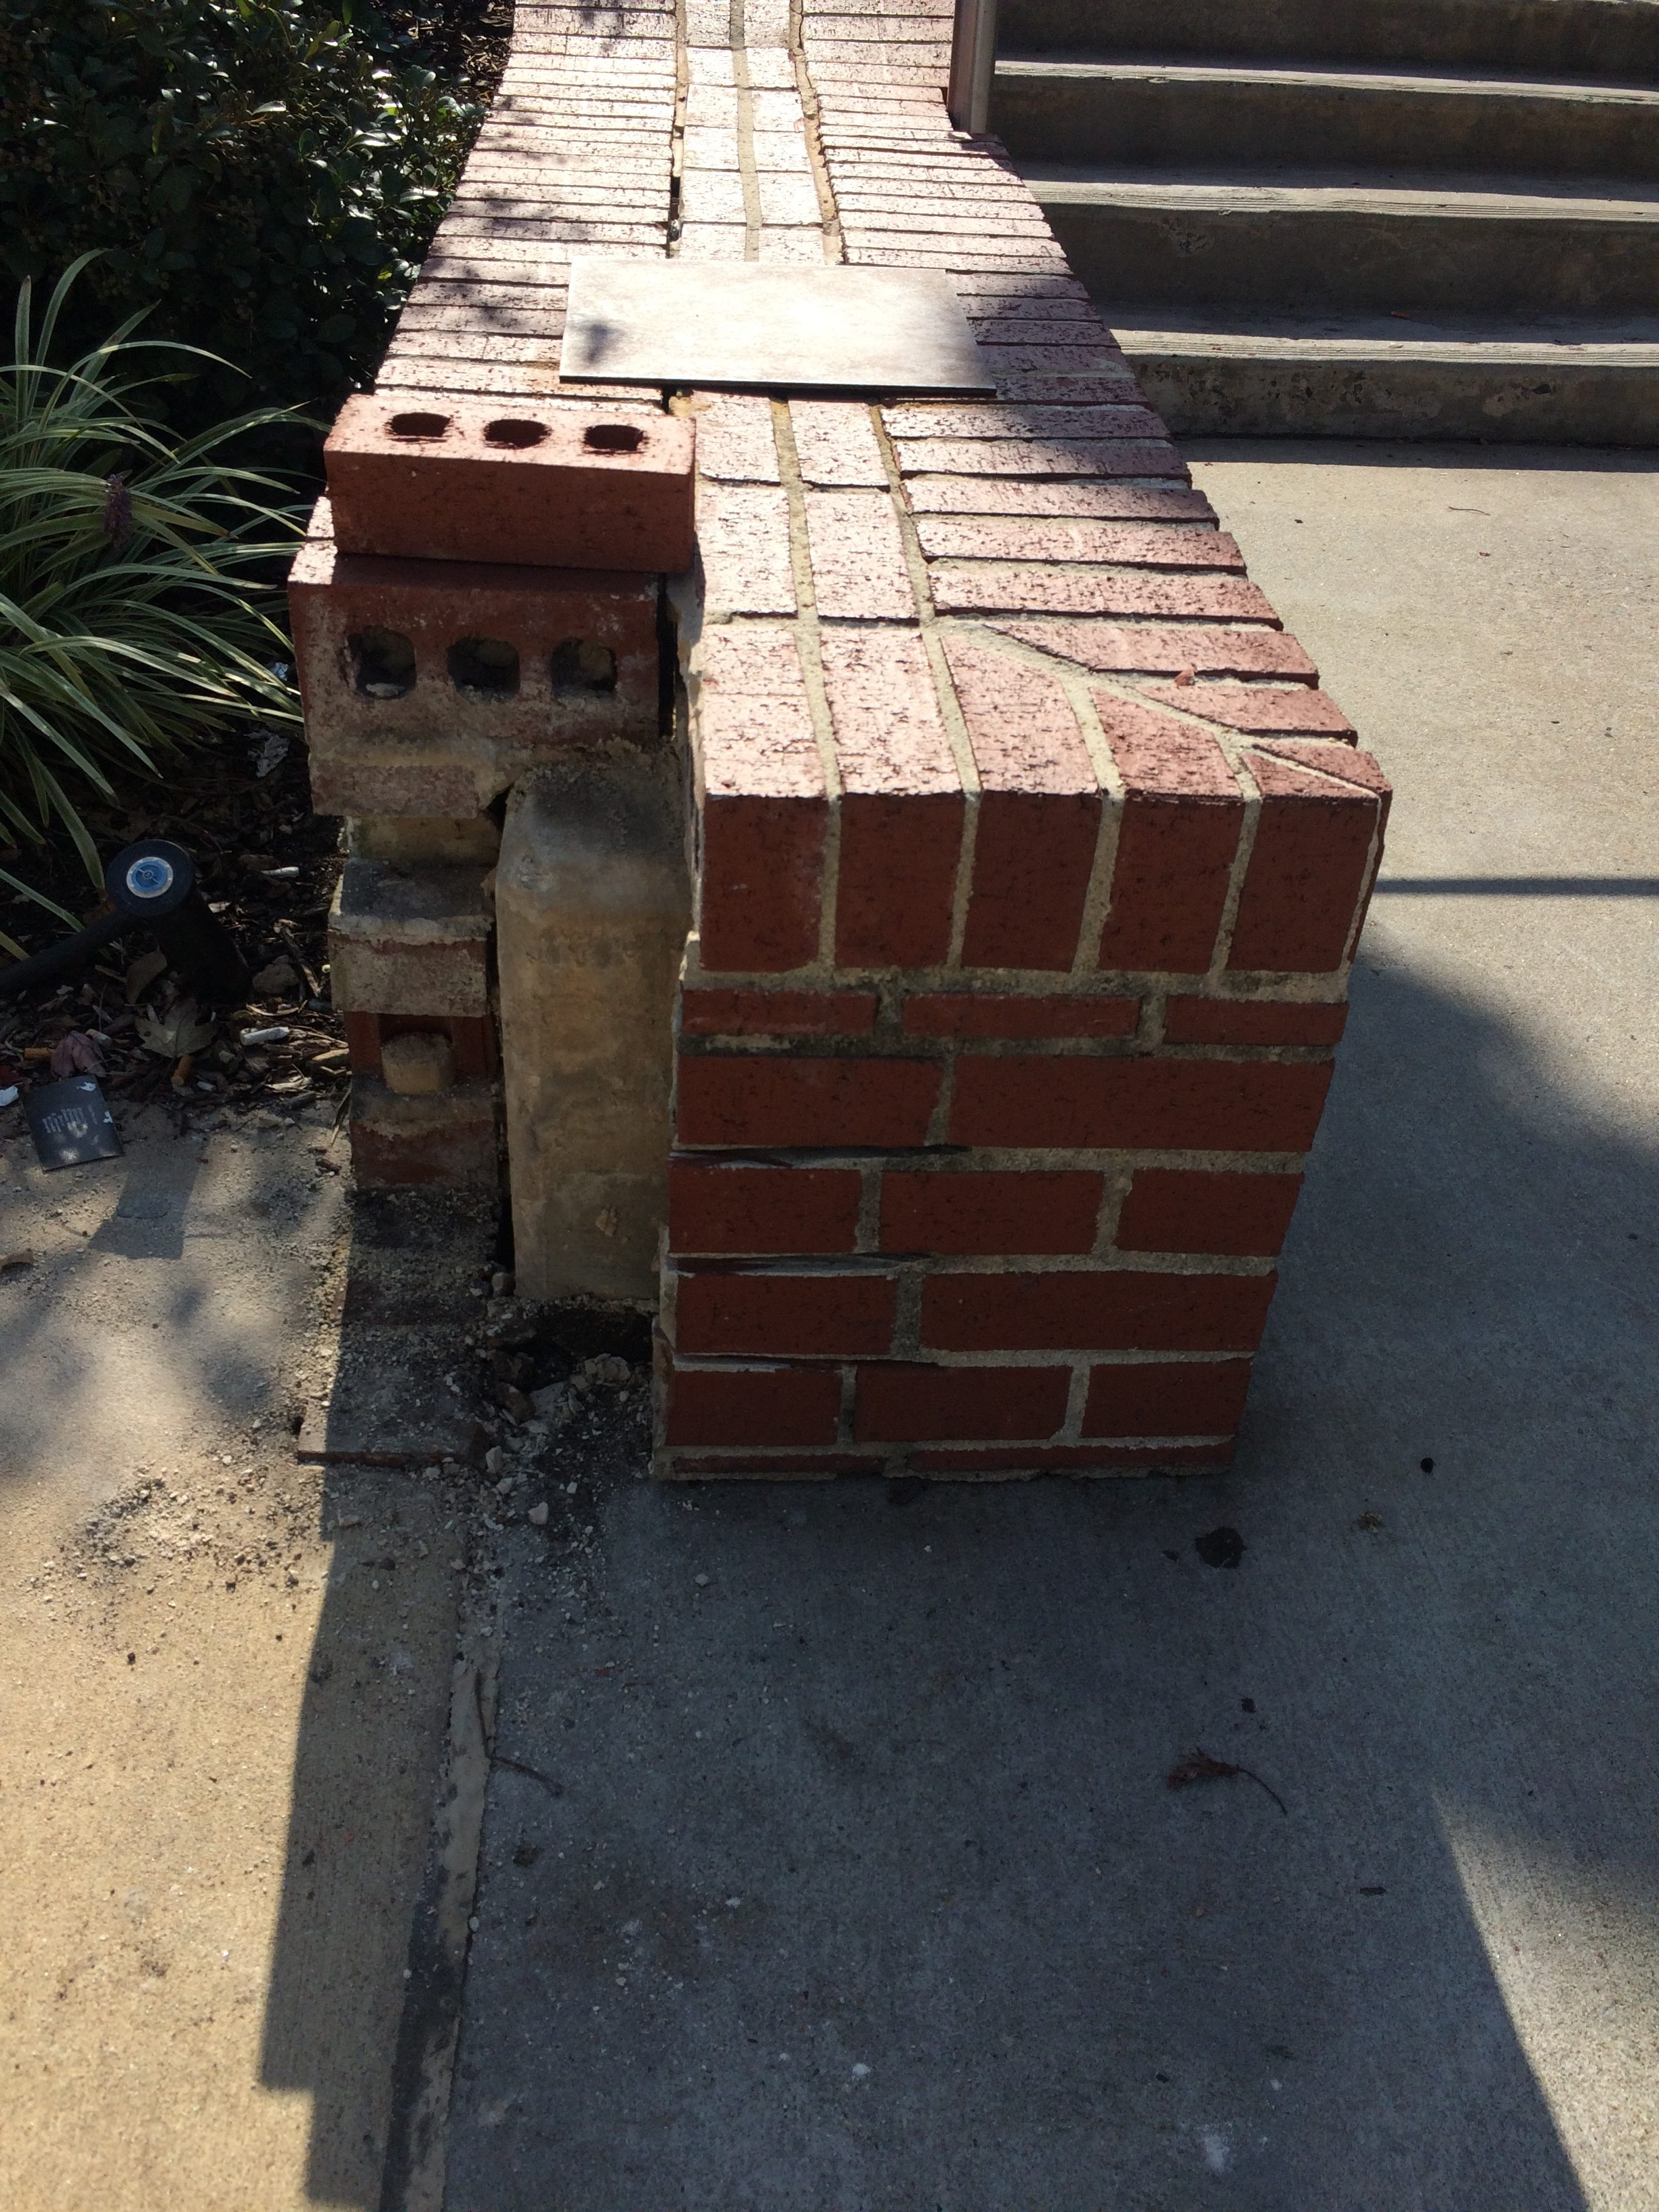 FedEx-Forum-damaged-brick-wall-at-street-e1537086269282